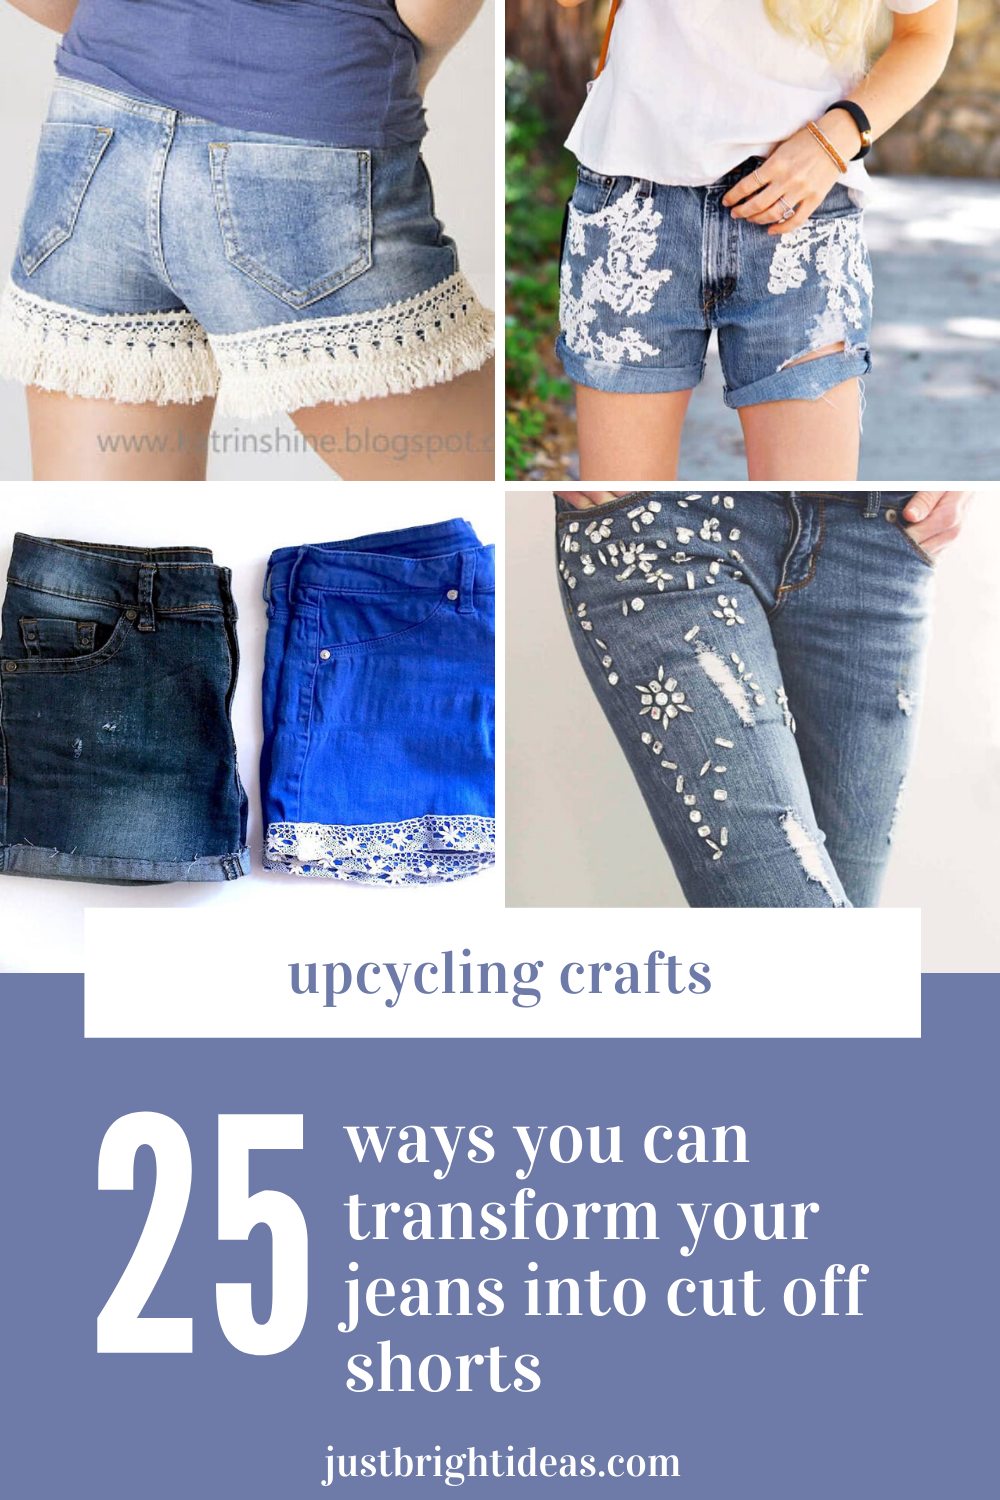 It's time to make do and mend - by upcyling your old worn out jeans into DIY cut off shorts